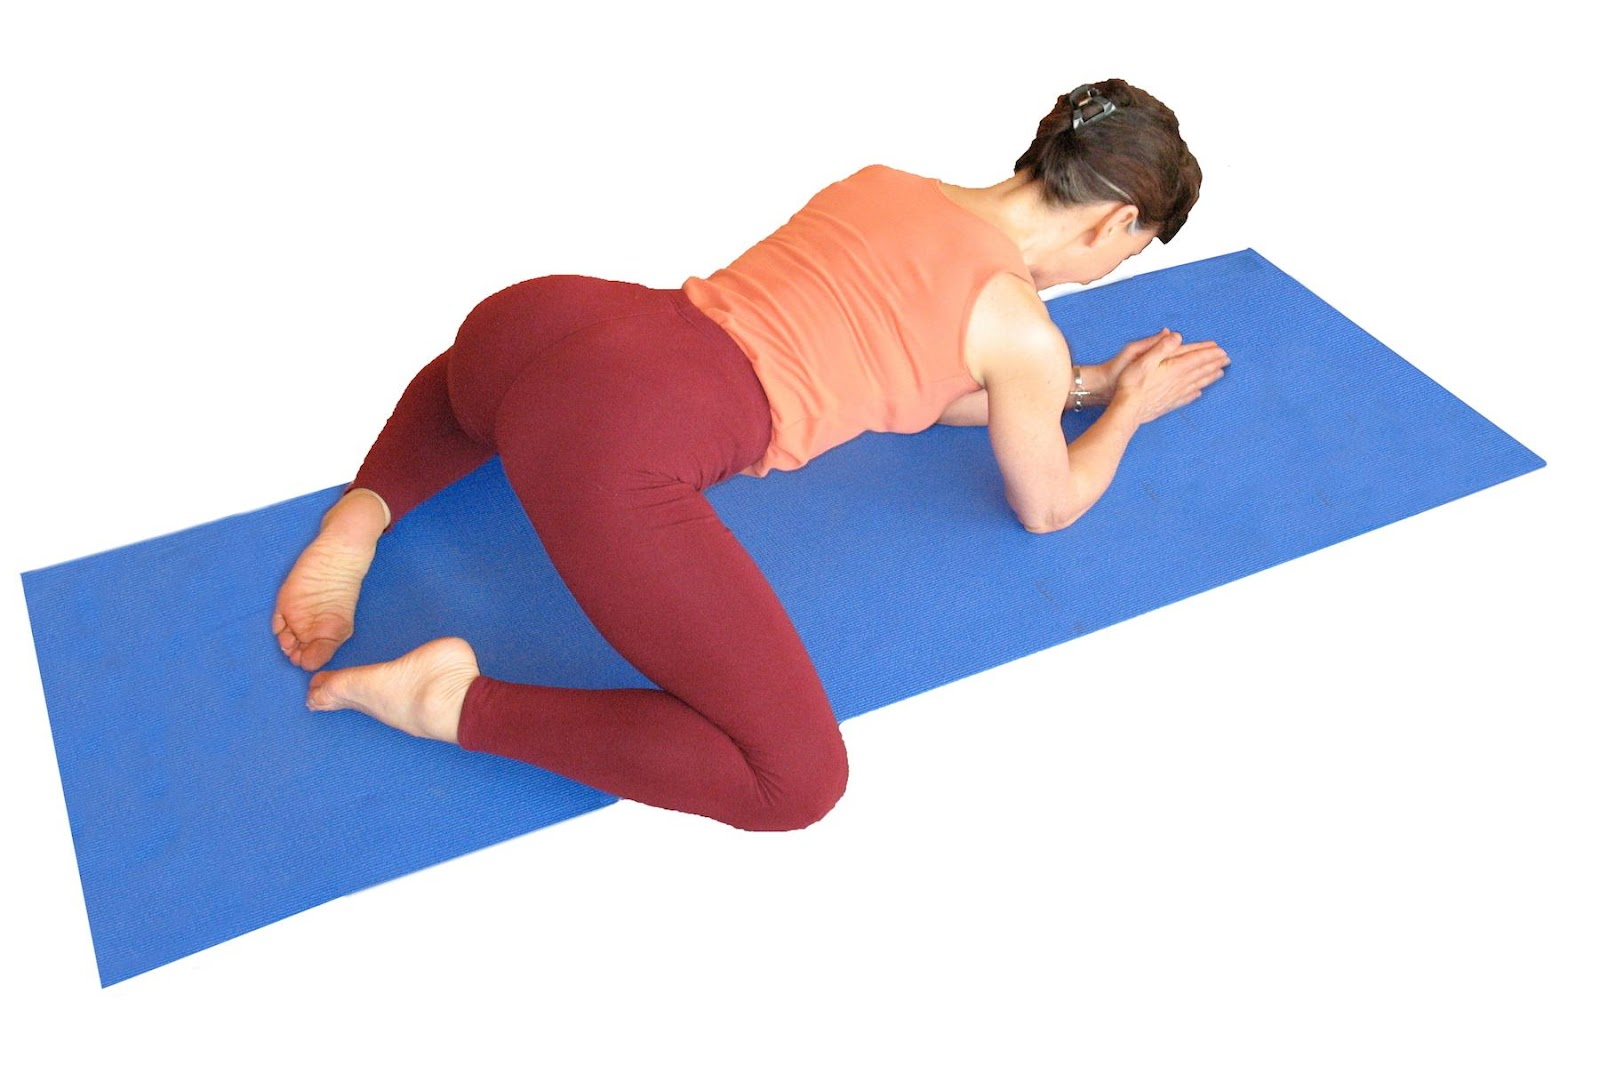 lillah schwartz practicing Kneeling Groin Stretch yoga pose as therapeutic yoga for back pain